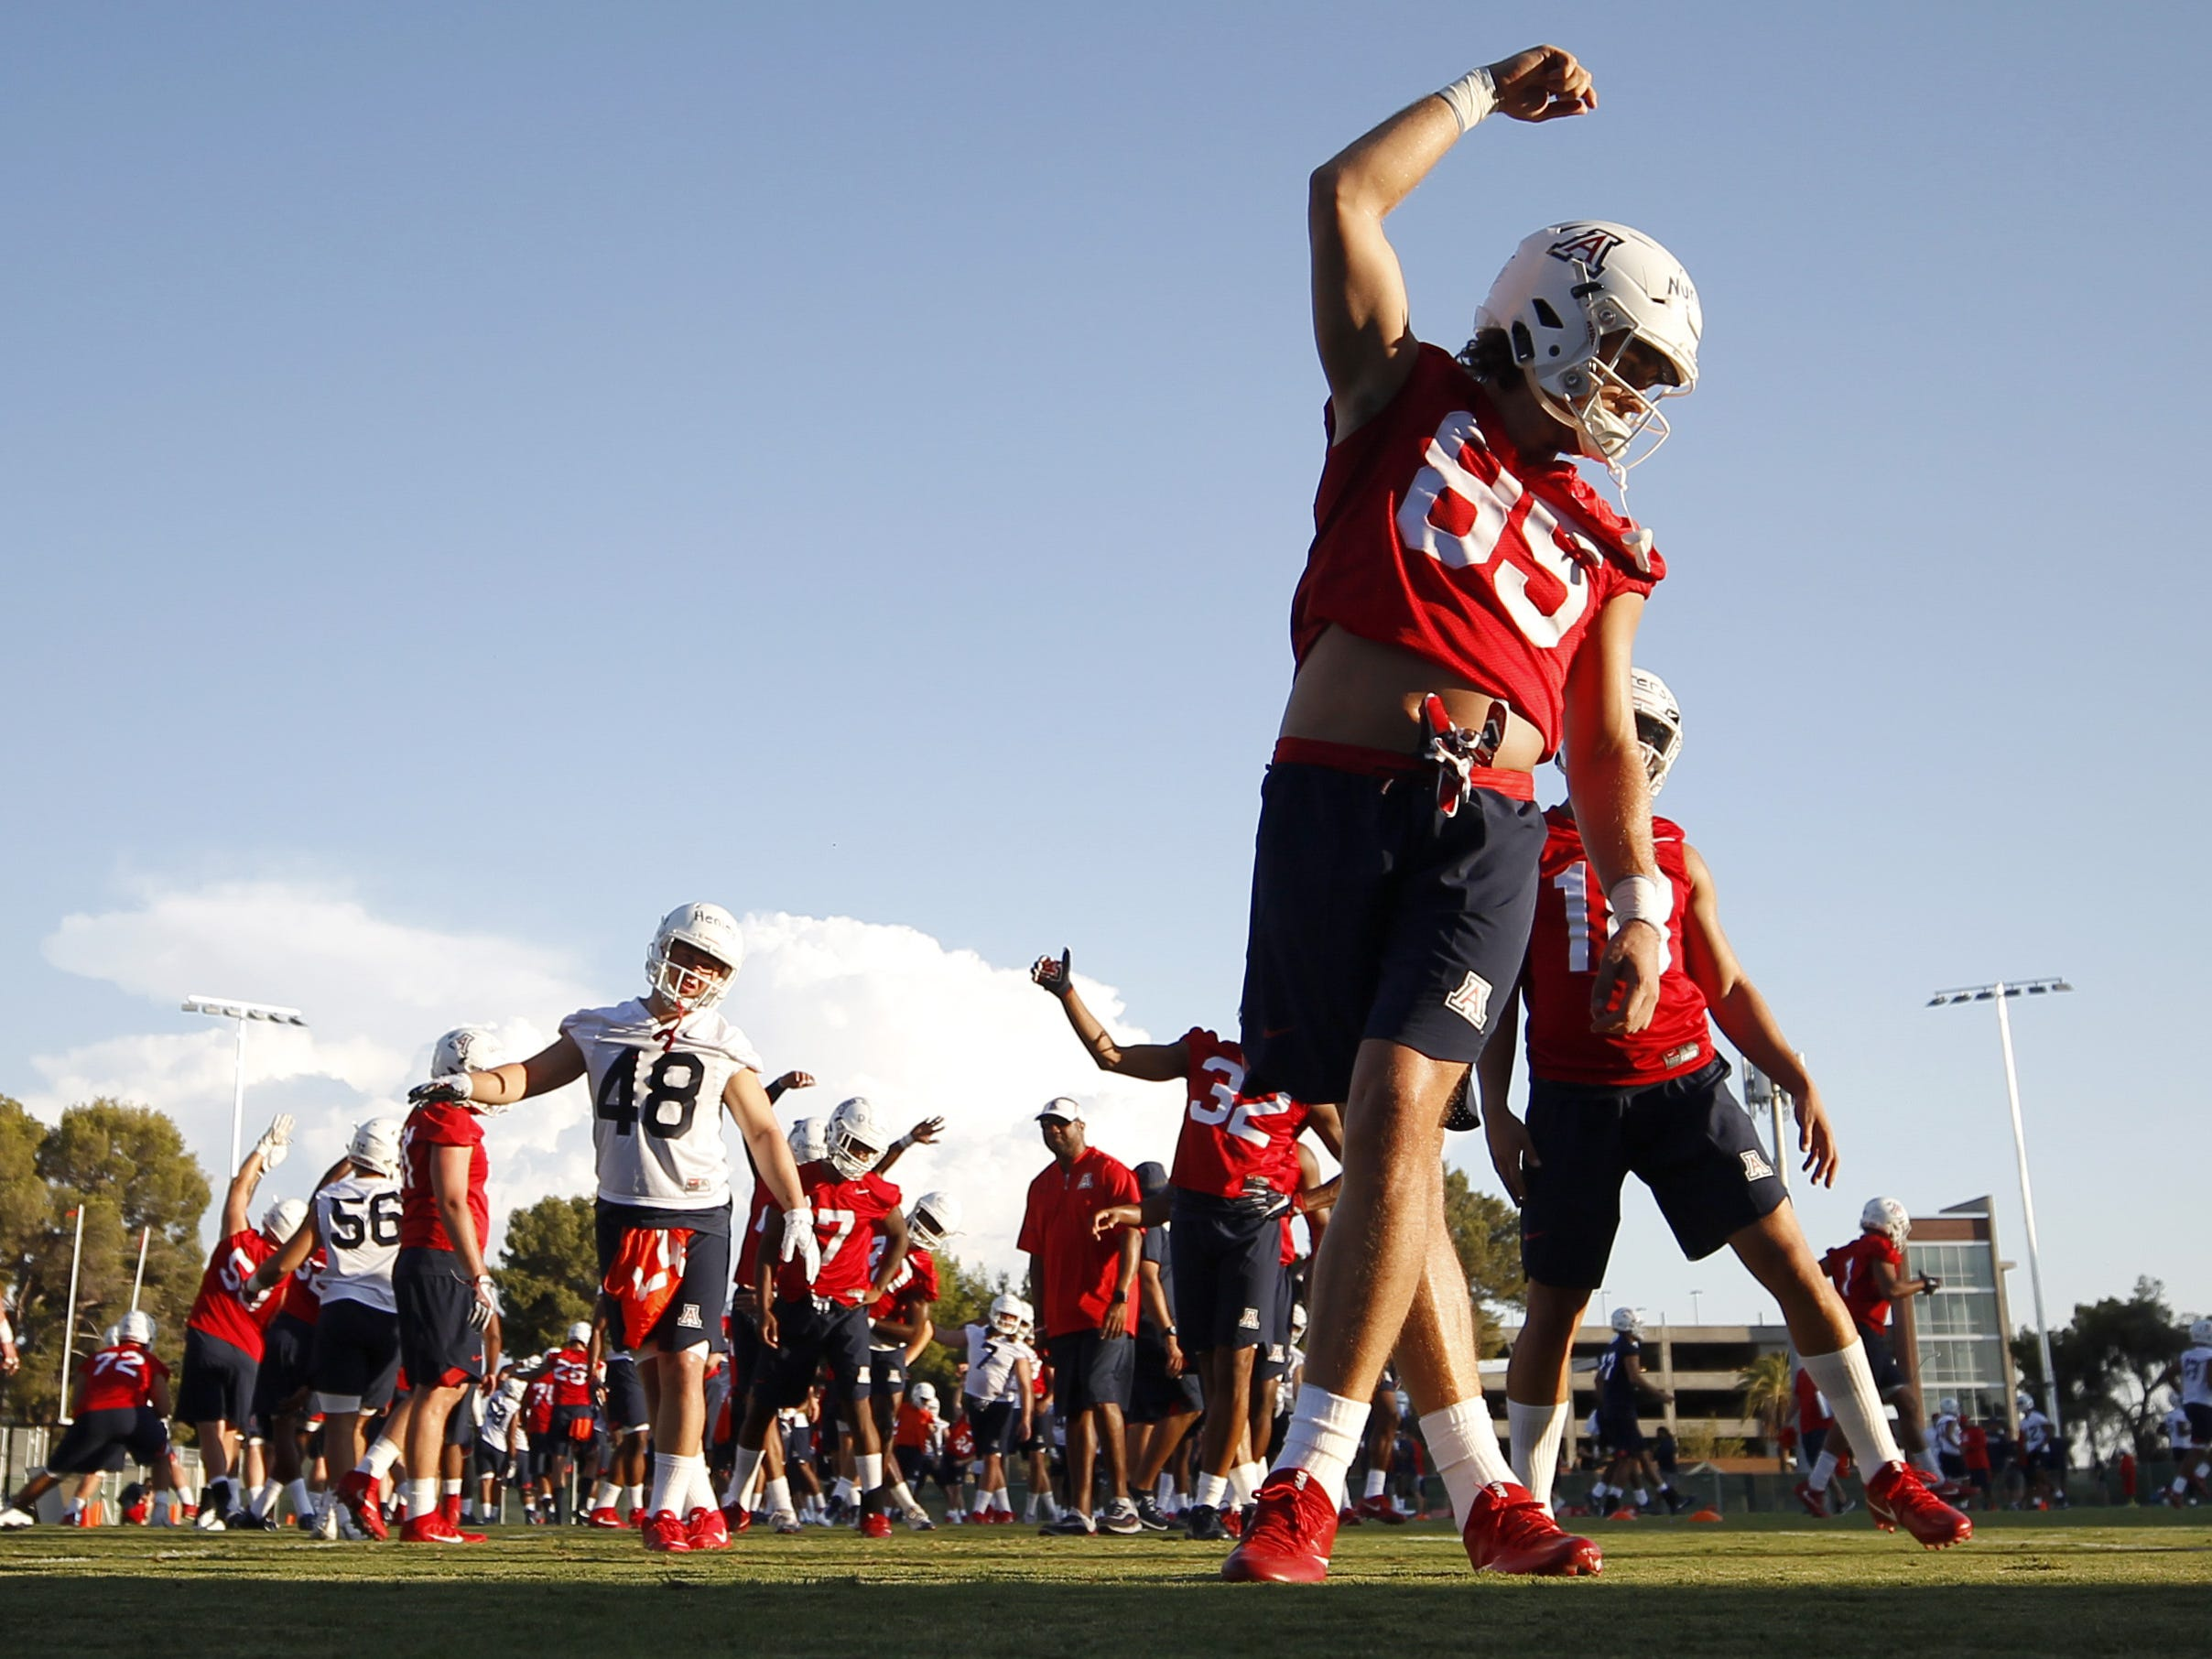 The Wildcats get limbered up as the team gets ready for  the first day of practice for the University of Arizona, Friday, August 3, 2018, Tucson, Ariz.